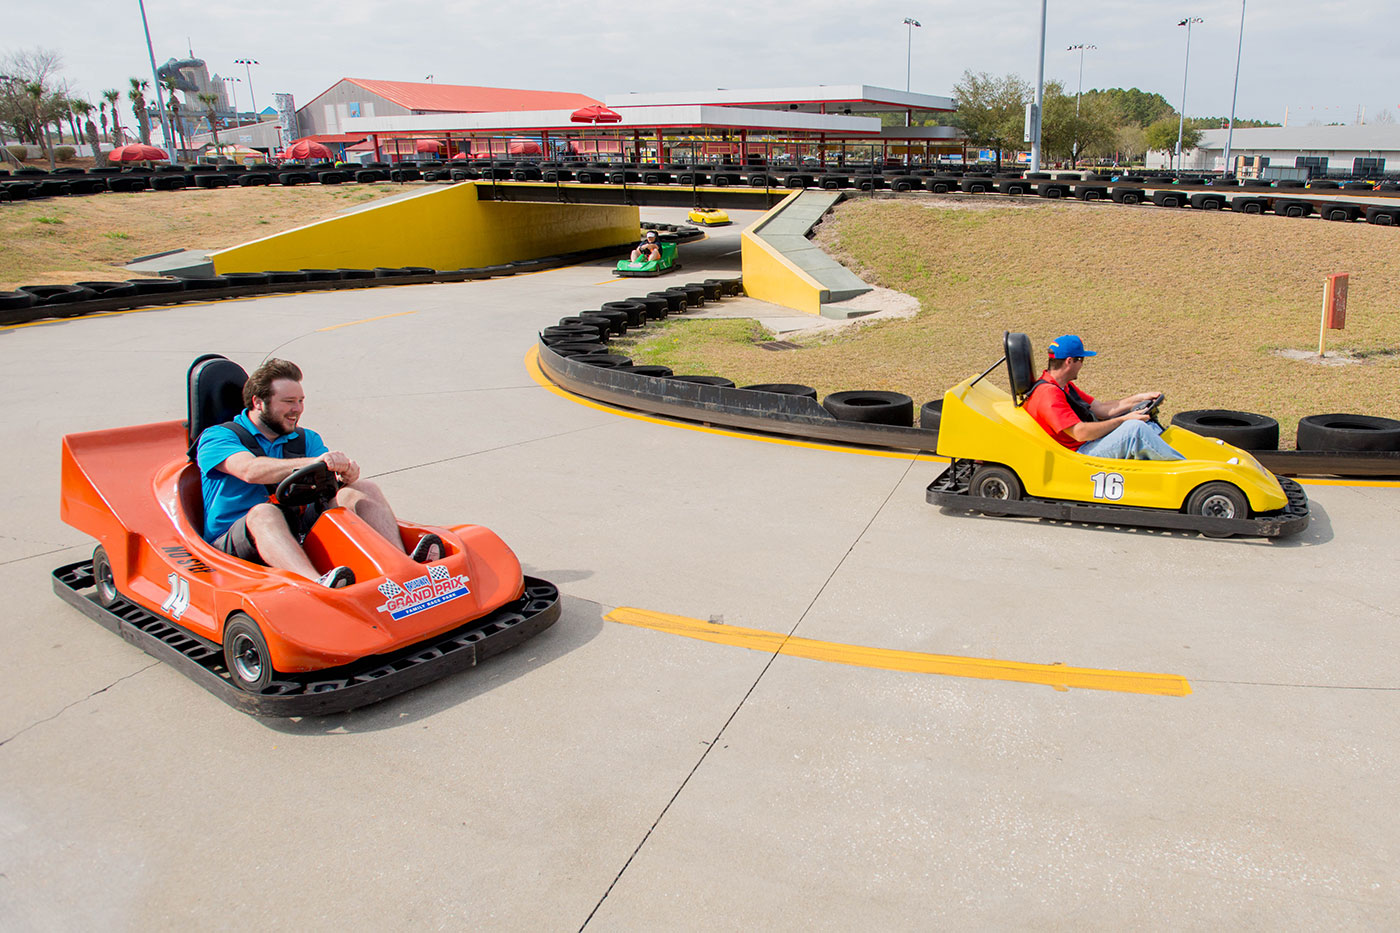 Go Kart Tracks - Broadway Grand Prix | Myrtle Beach, SC